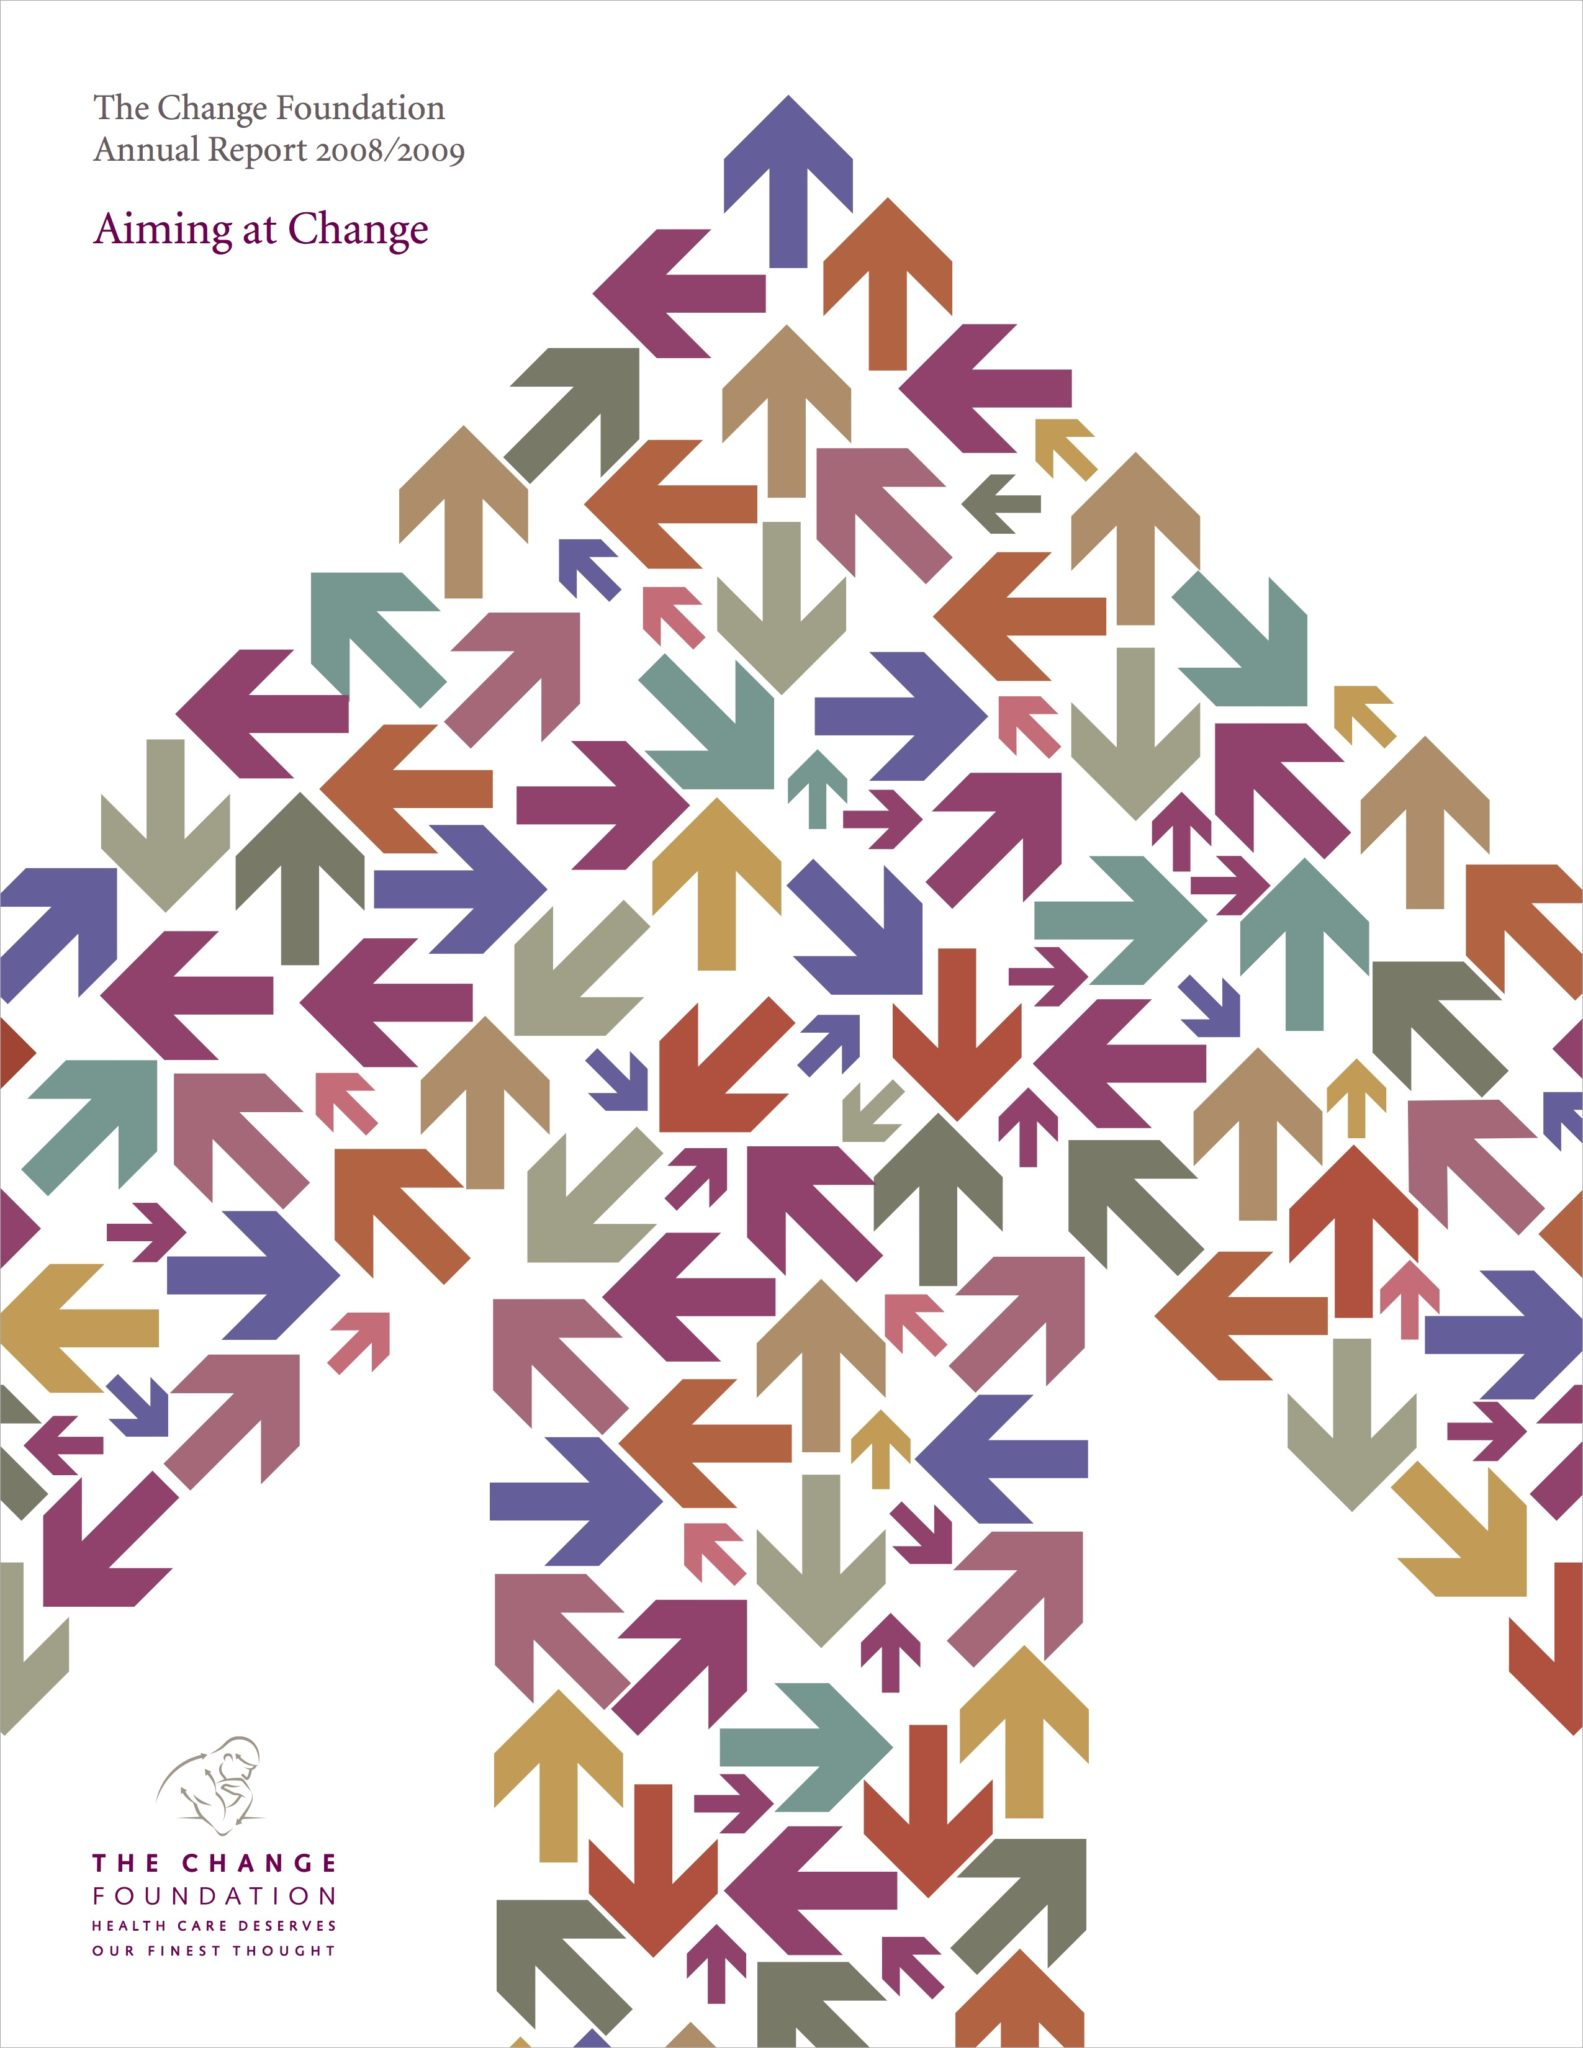 Aiming at Change: The Change Foundation Annual Report 2008/2009